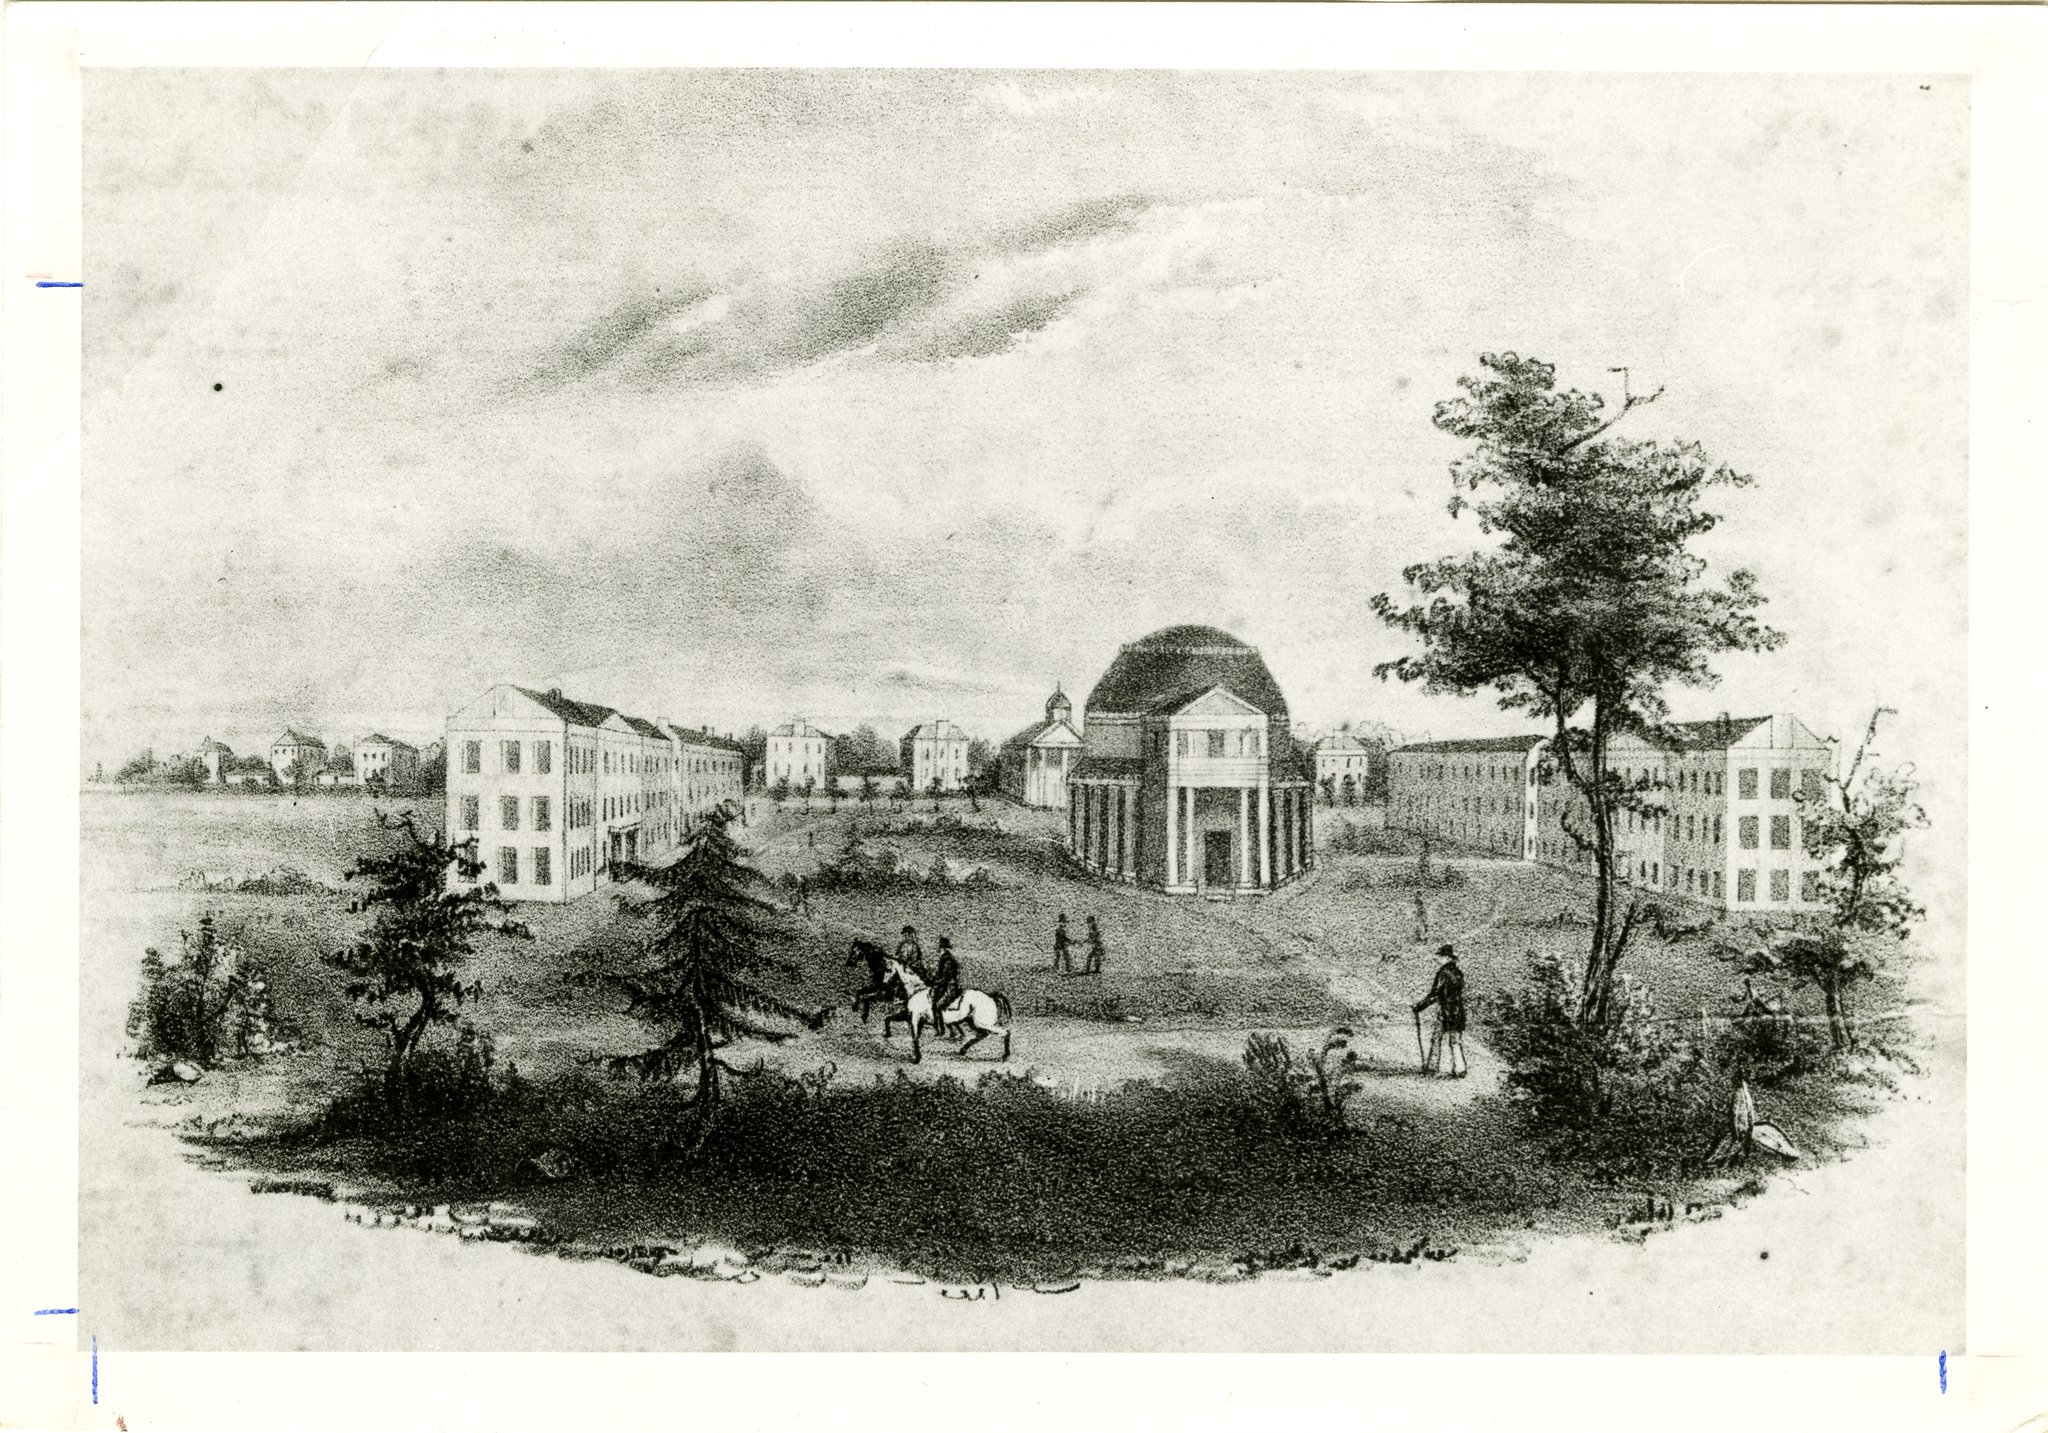 Patron+ A Christmas present was given to the University of Alabama on Dec. 25, 1824